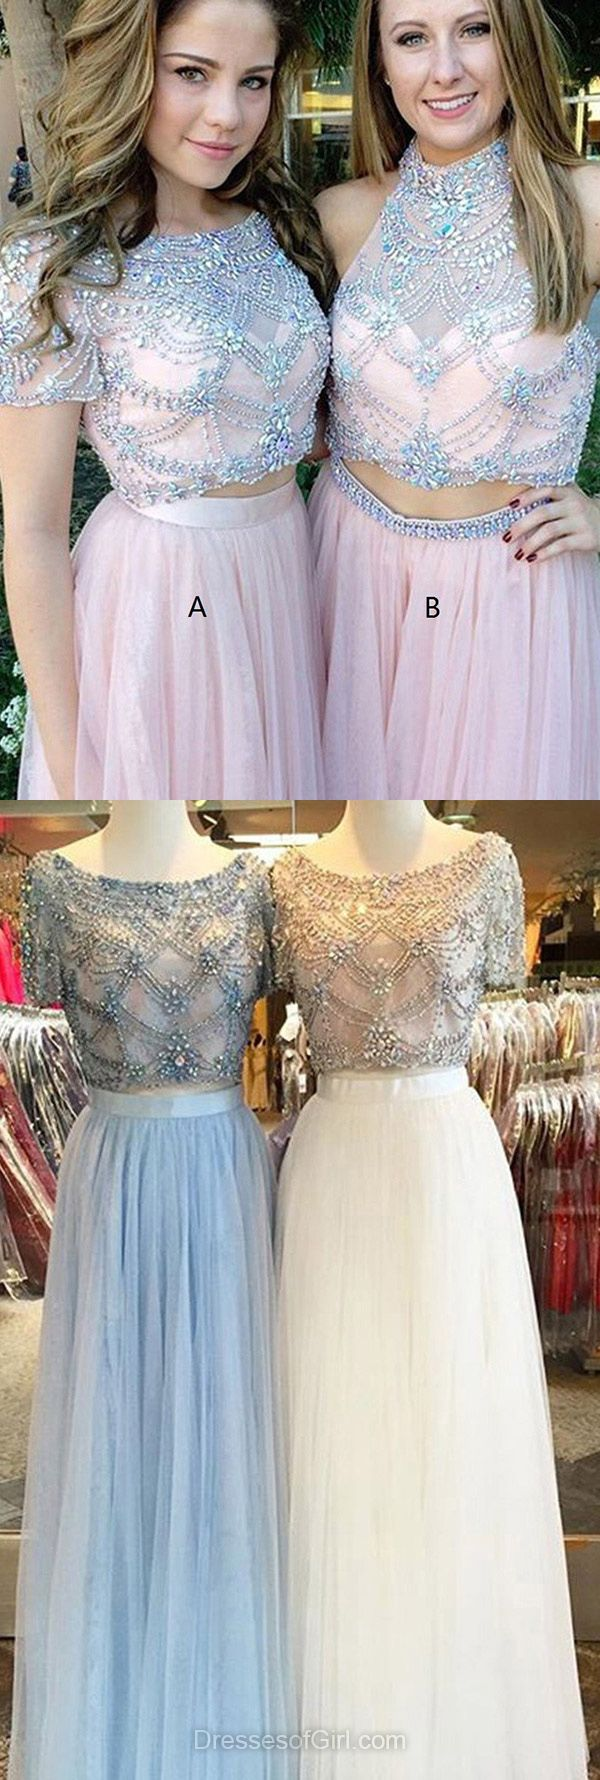 A-line Scoop Prom Dresses, Neck Tulle Long Formal Dresses, Beading Evening Party Gowns